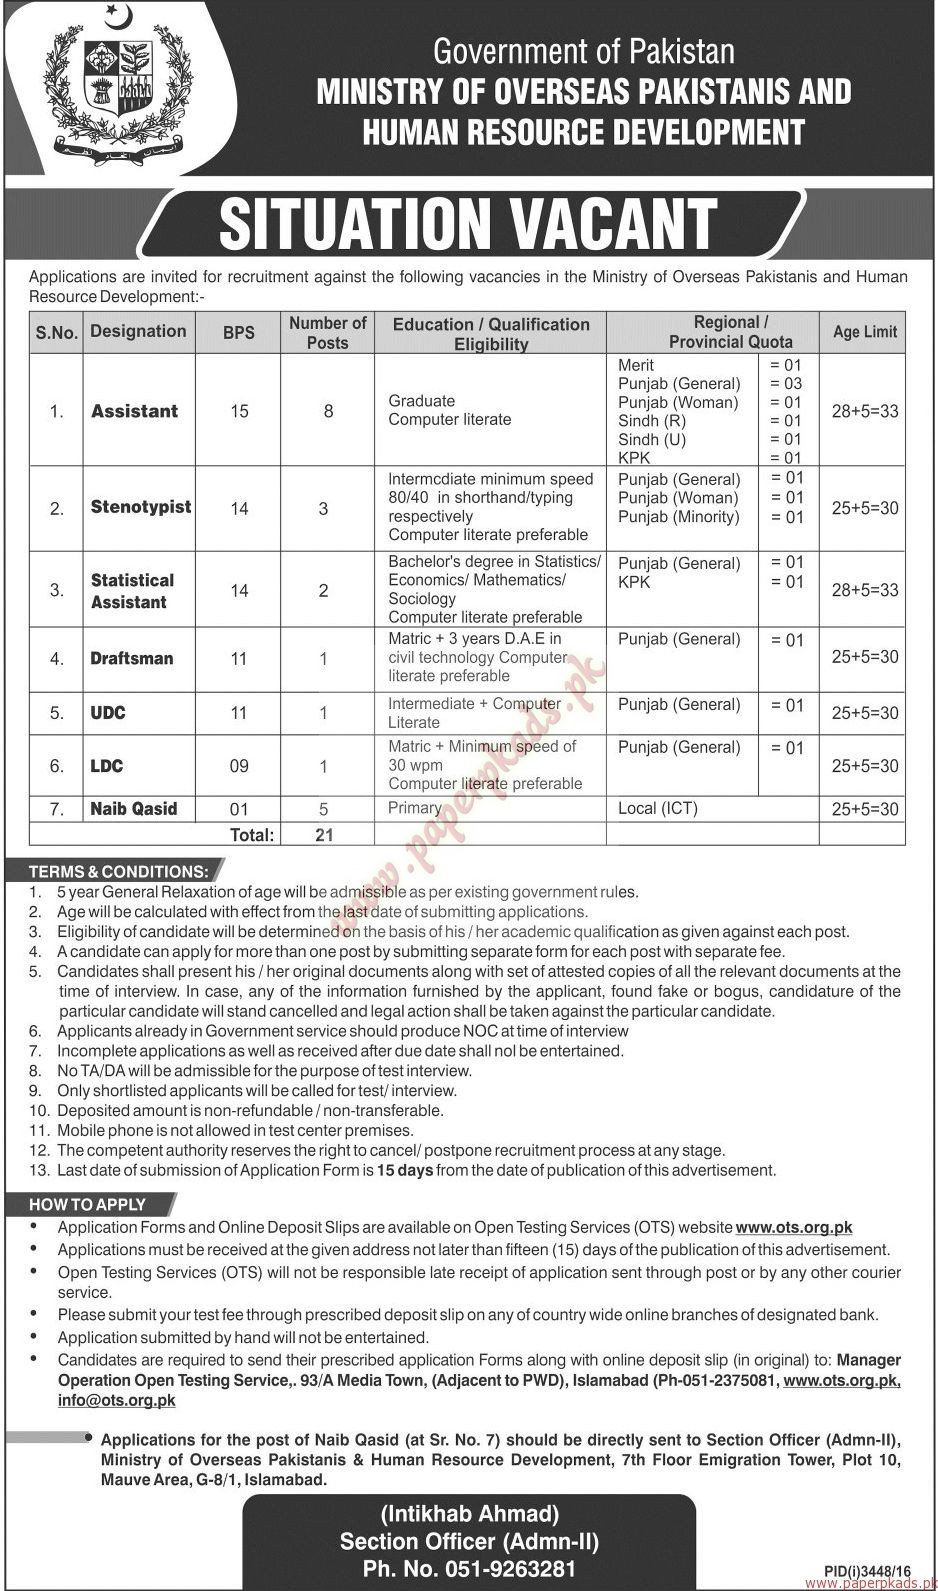 Government of Pakistan - Ministry of Overseas Pakistanis and Human Resource Development Jobs